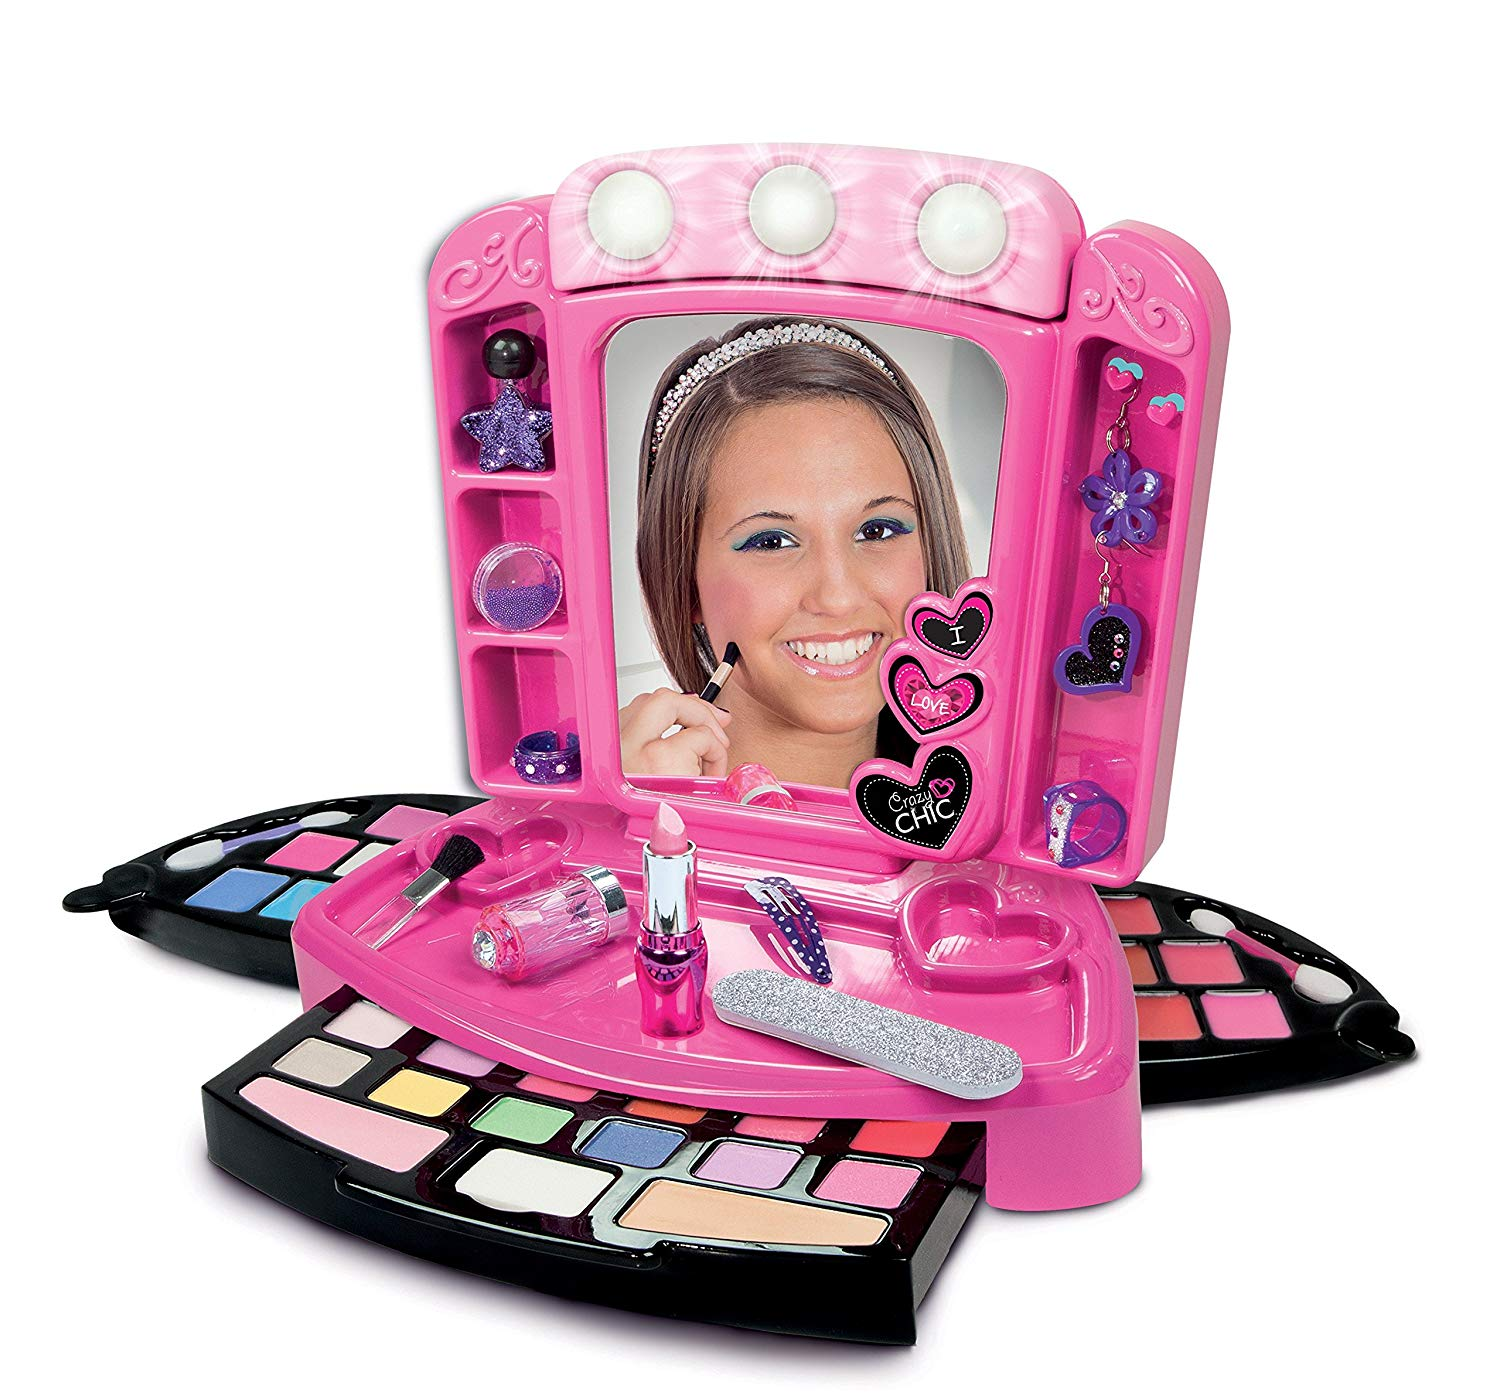 Clementoni Crazy Chic The Make-Up Mirror